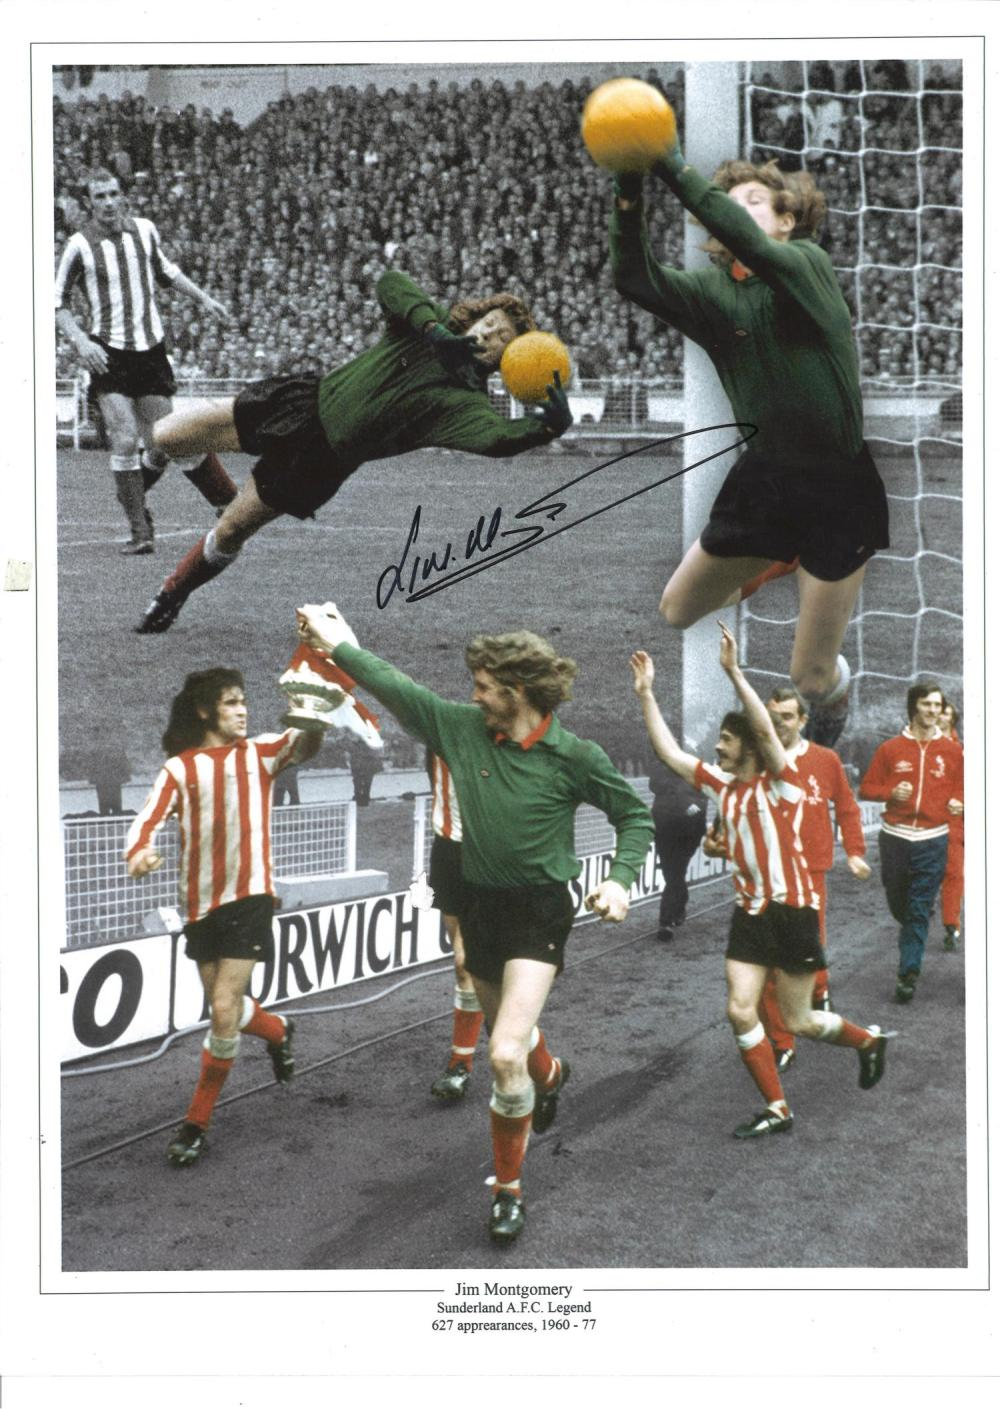 Football Jim Montgomery signed 16x12 colour enhanced montage photo Sunderland legend pictured making